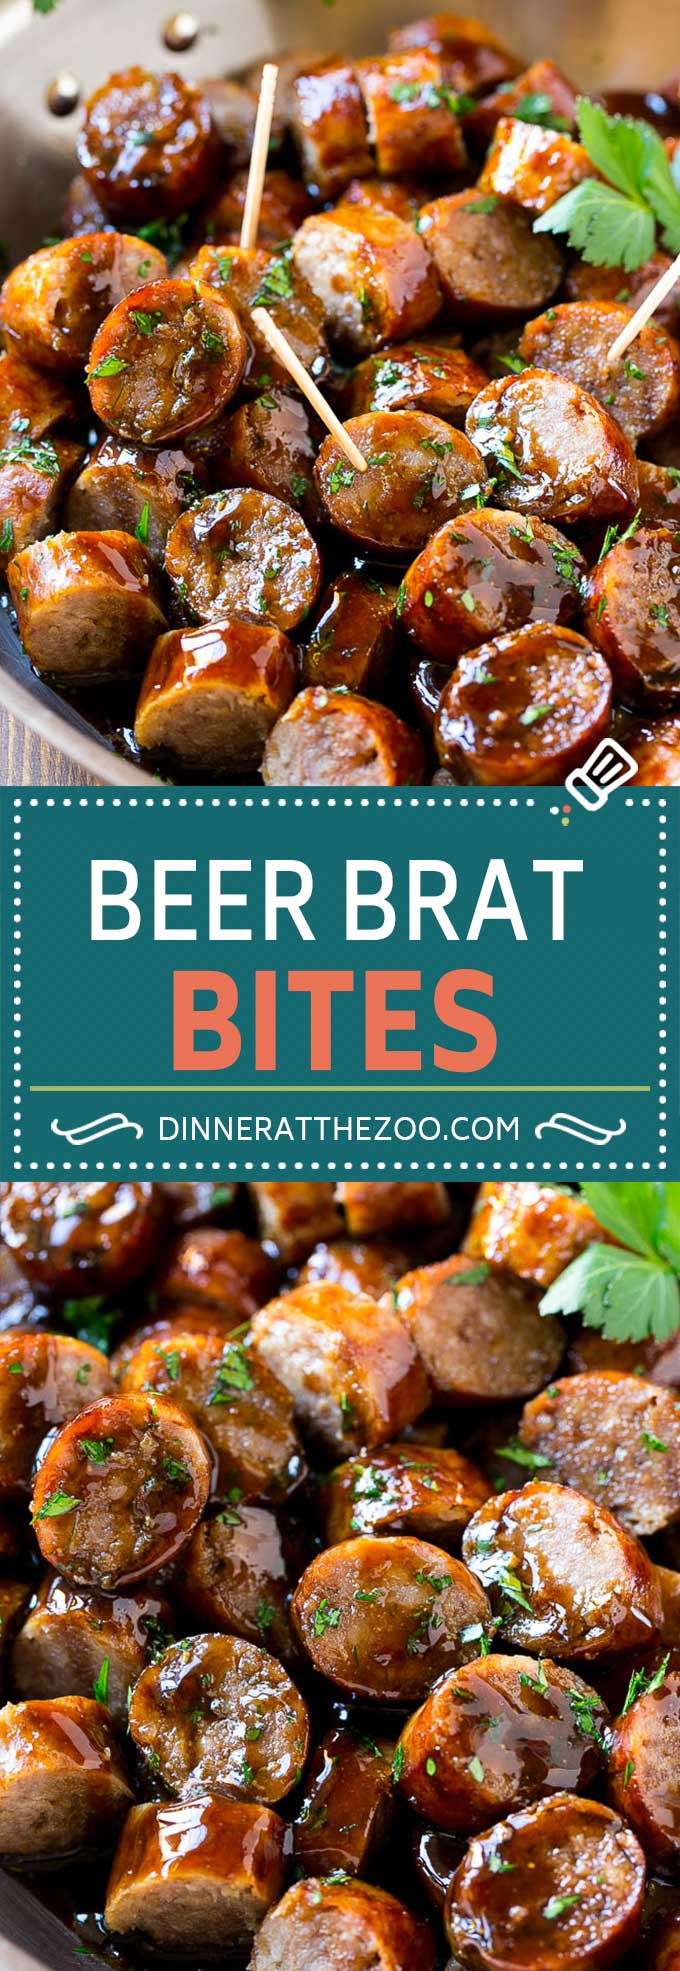 Beer Brat Bites Recipe | Sausage Appetizer | Bratwurst Recipe